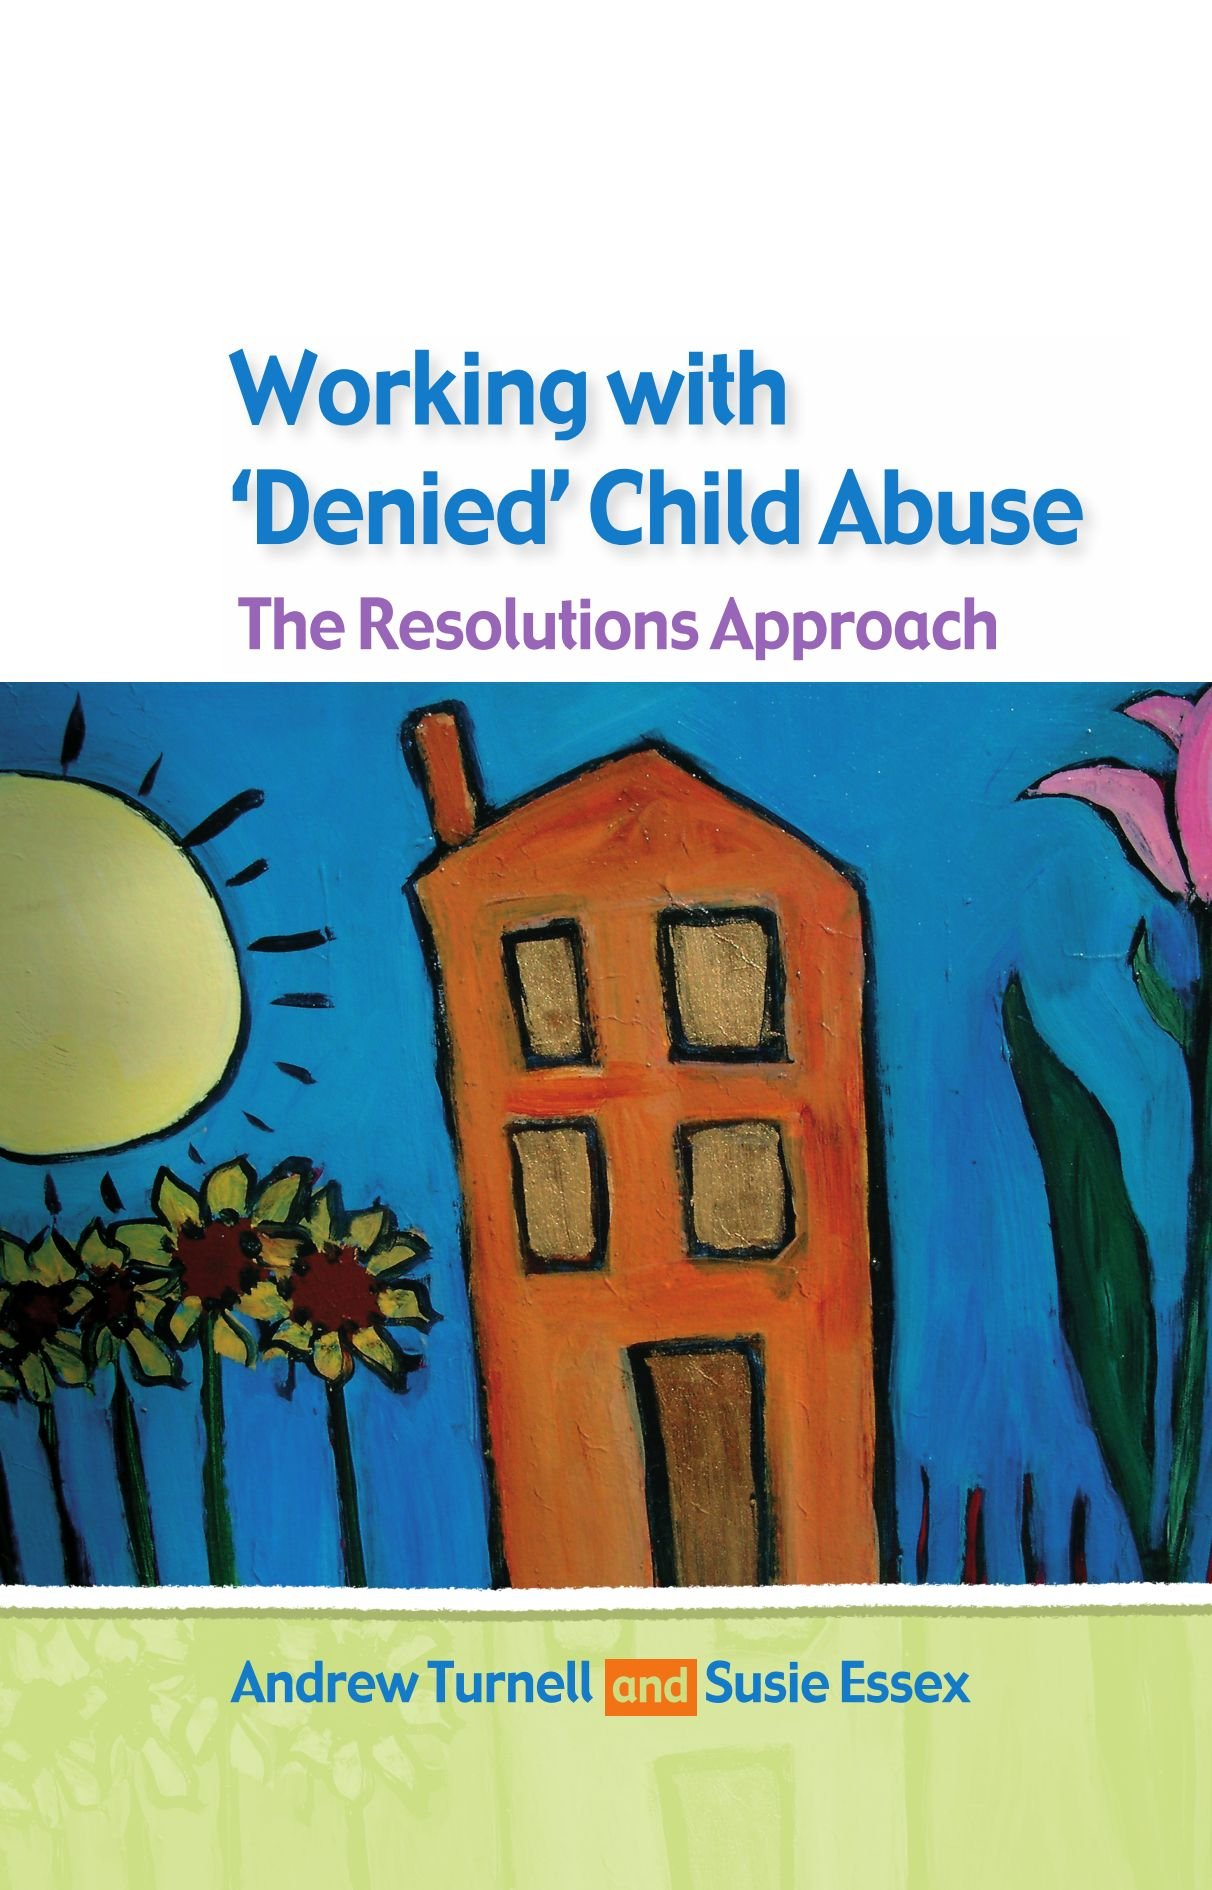 Working with denied child abuse: the resolutions approach: The Resolutions  Approach: Amazon.co.uk: Turnell: 9780335216574: Books